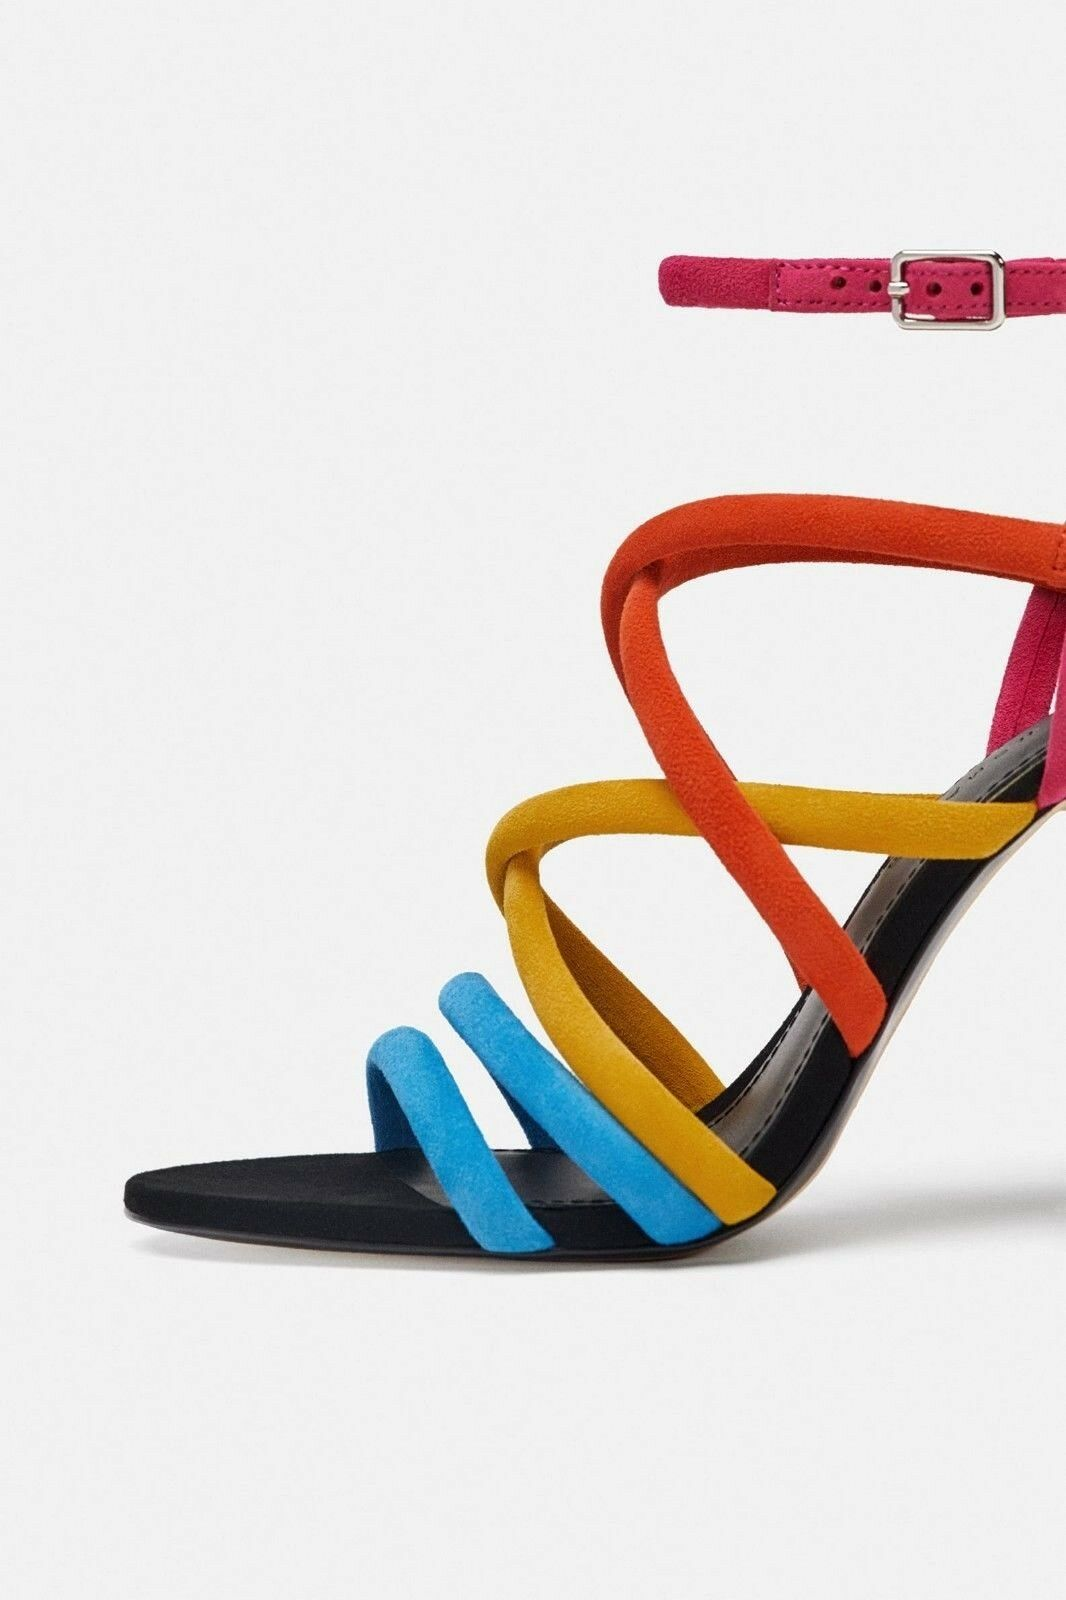 ZARA HIGH HEEL SUEDE LEATHER SANDALS WITH COLOURFUL STRAPS SIZE UK 3 EU 36 USA 6